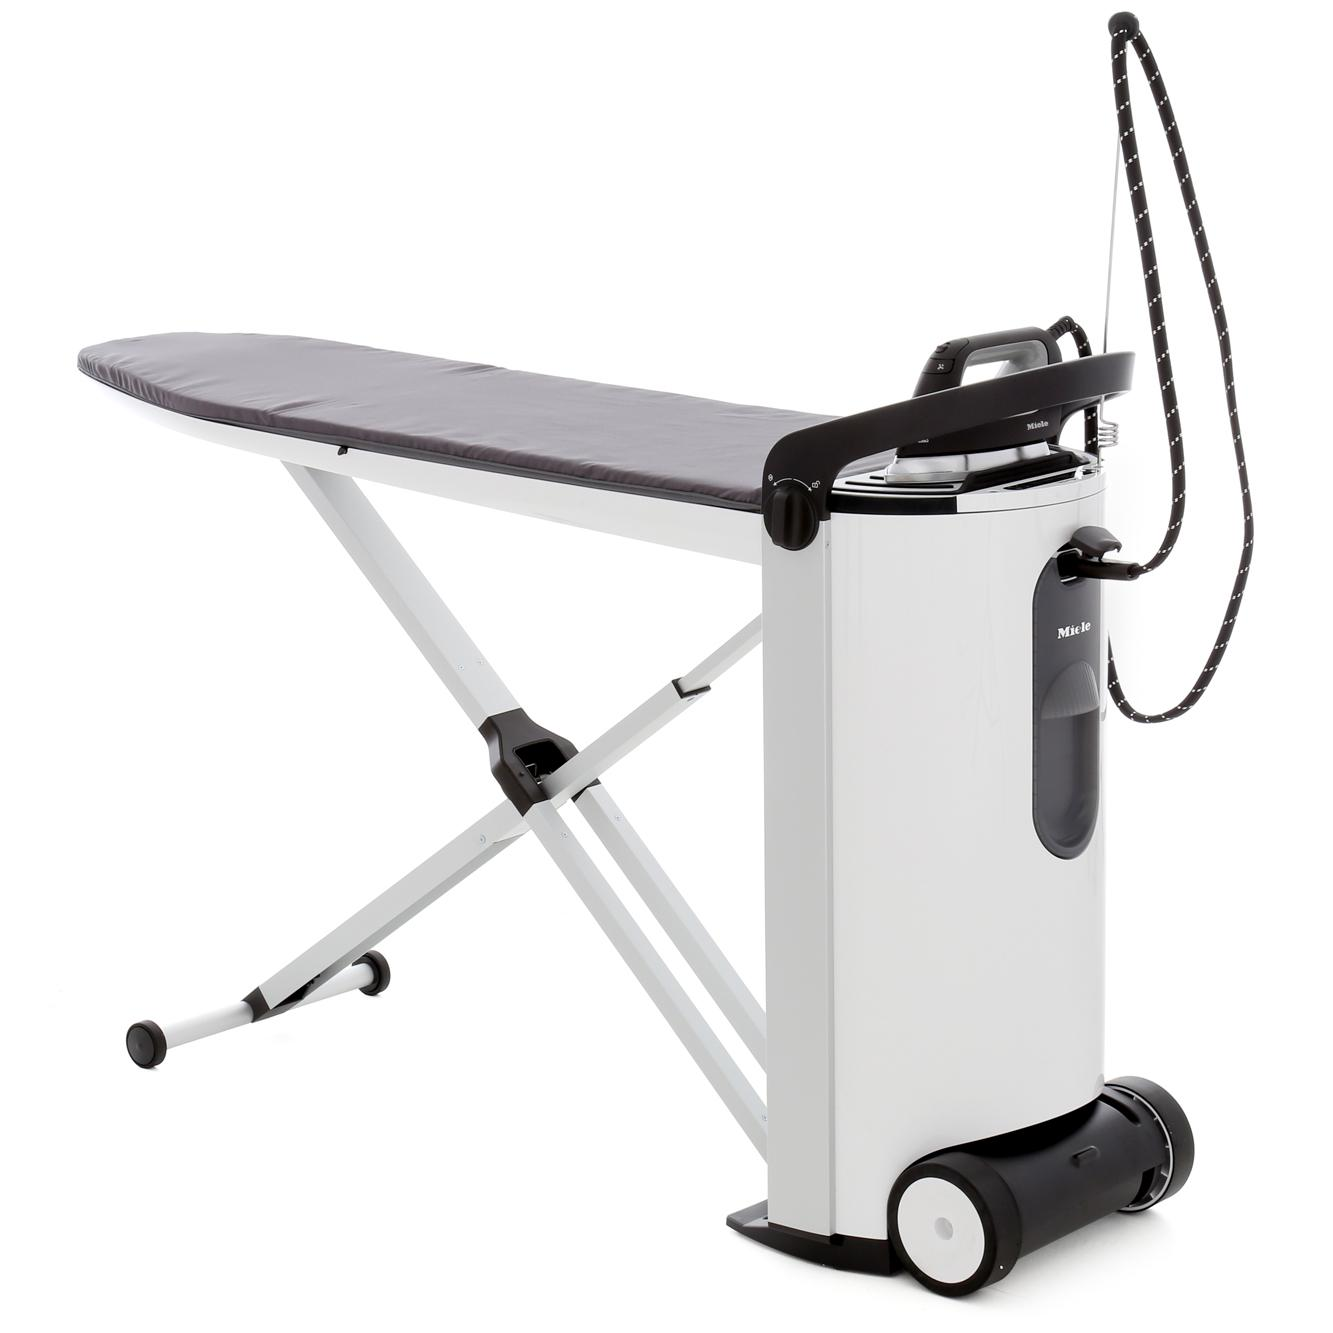 Miele B3312 FashionMaster Steam Ironing system